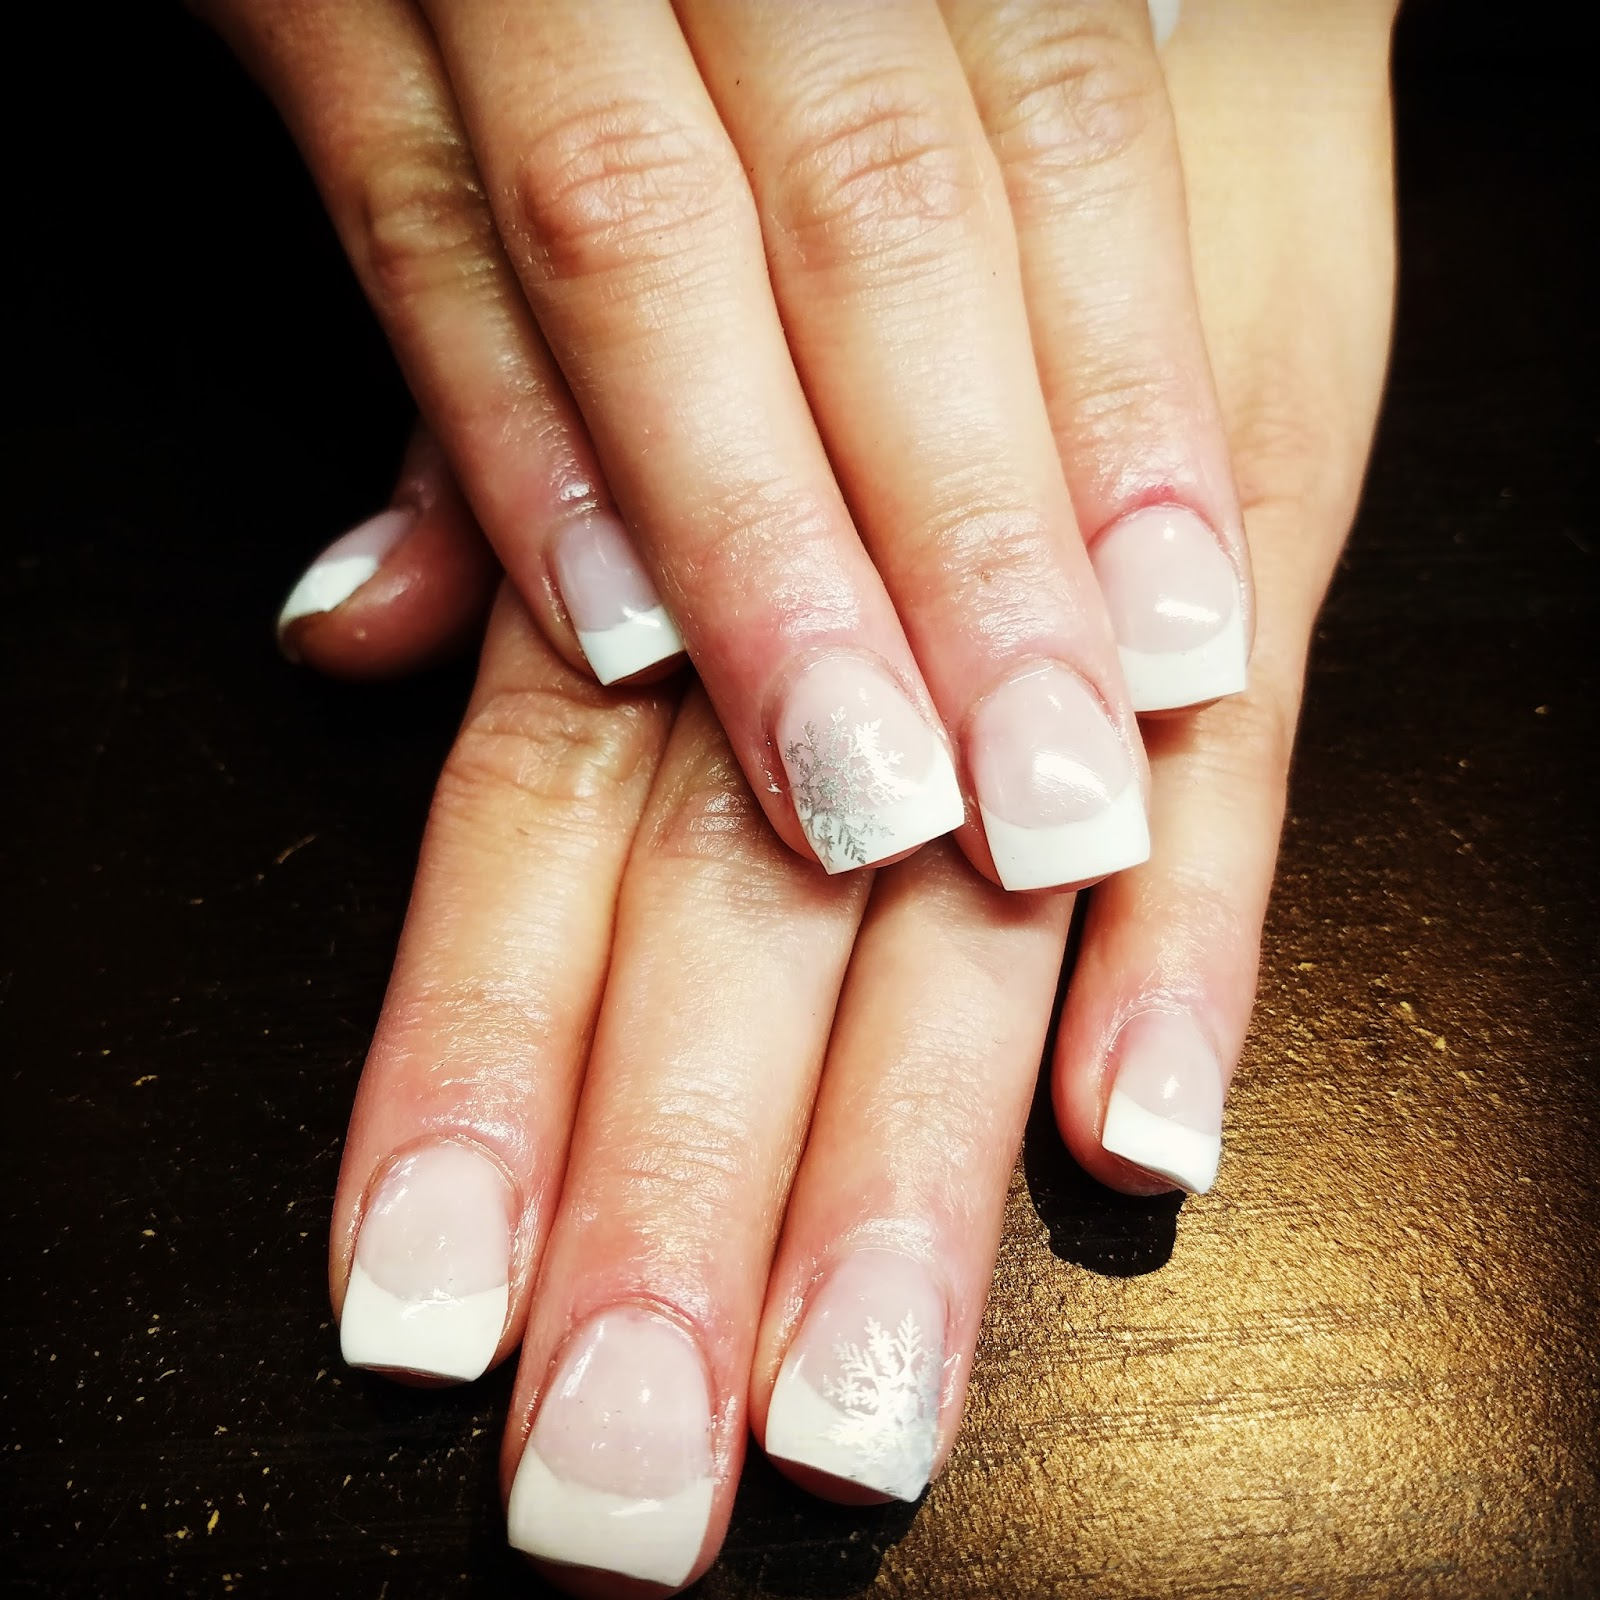 Hair By Melanie: Classic French Gel nails. So nice.